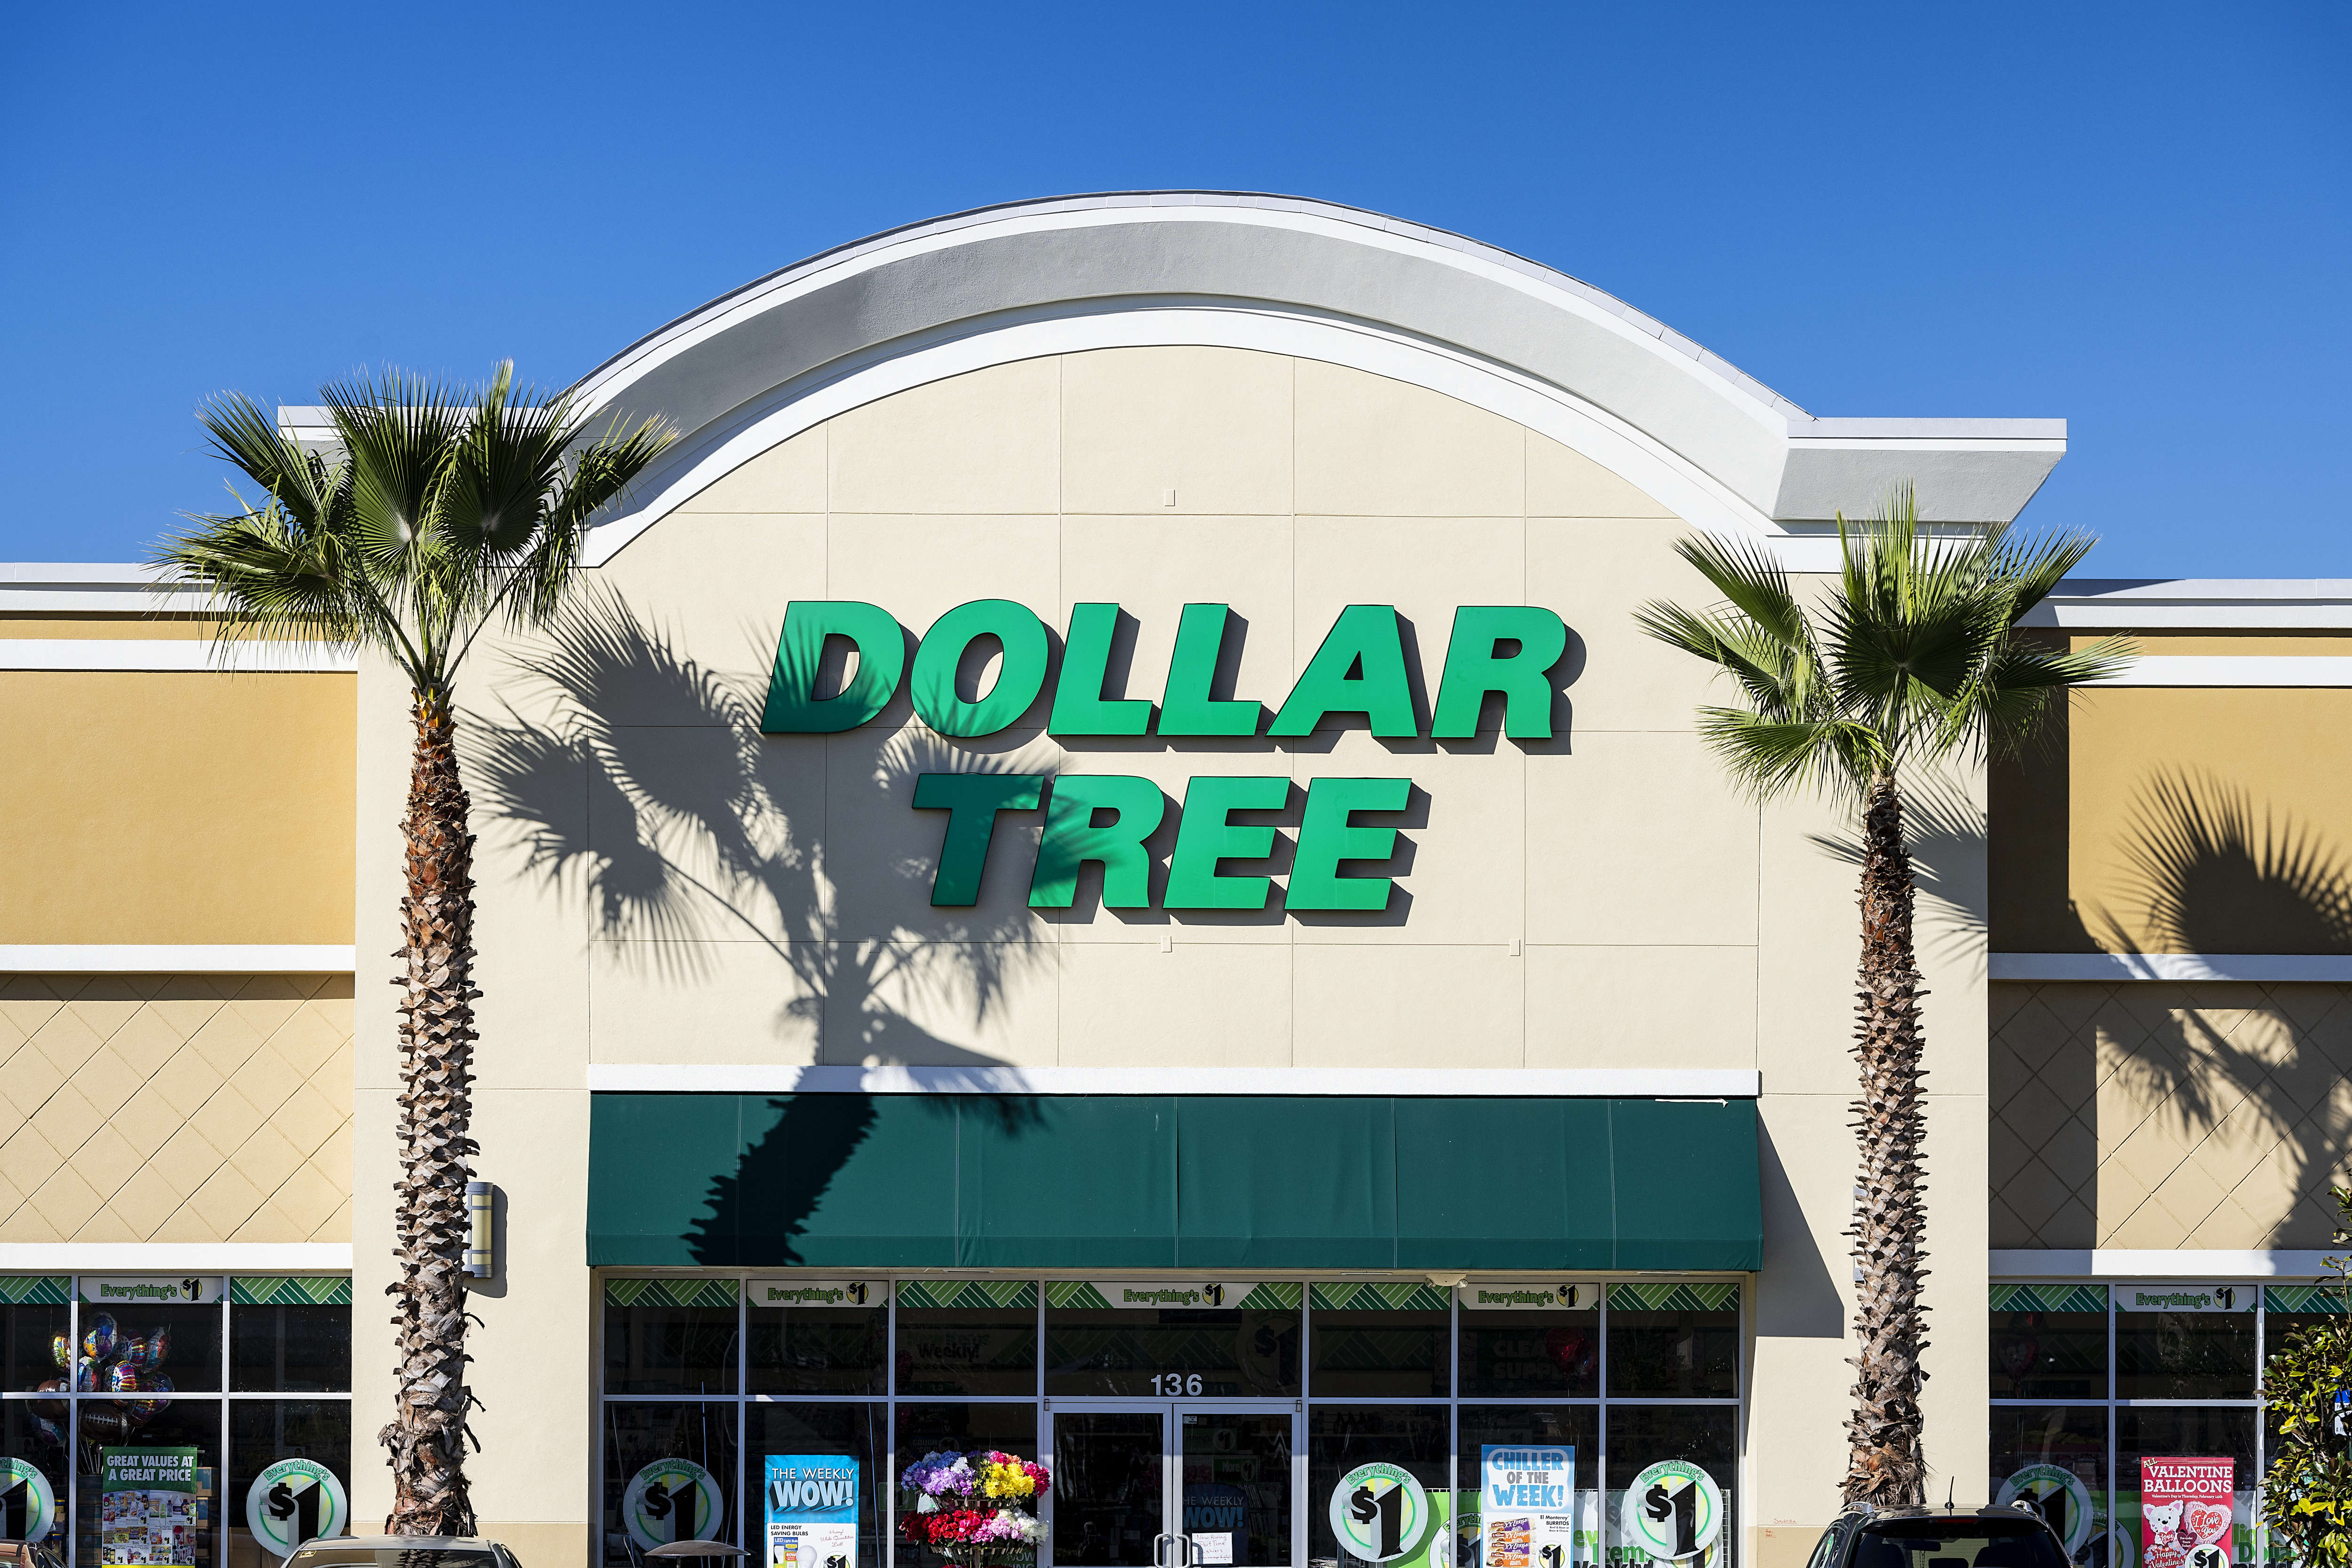 Dollor Tree store exterior and sign